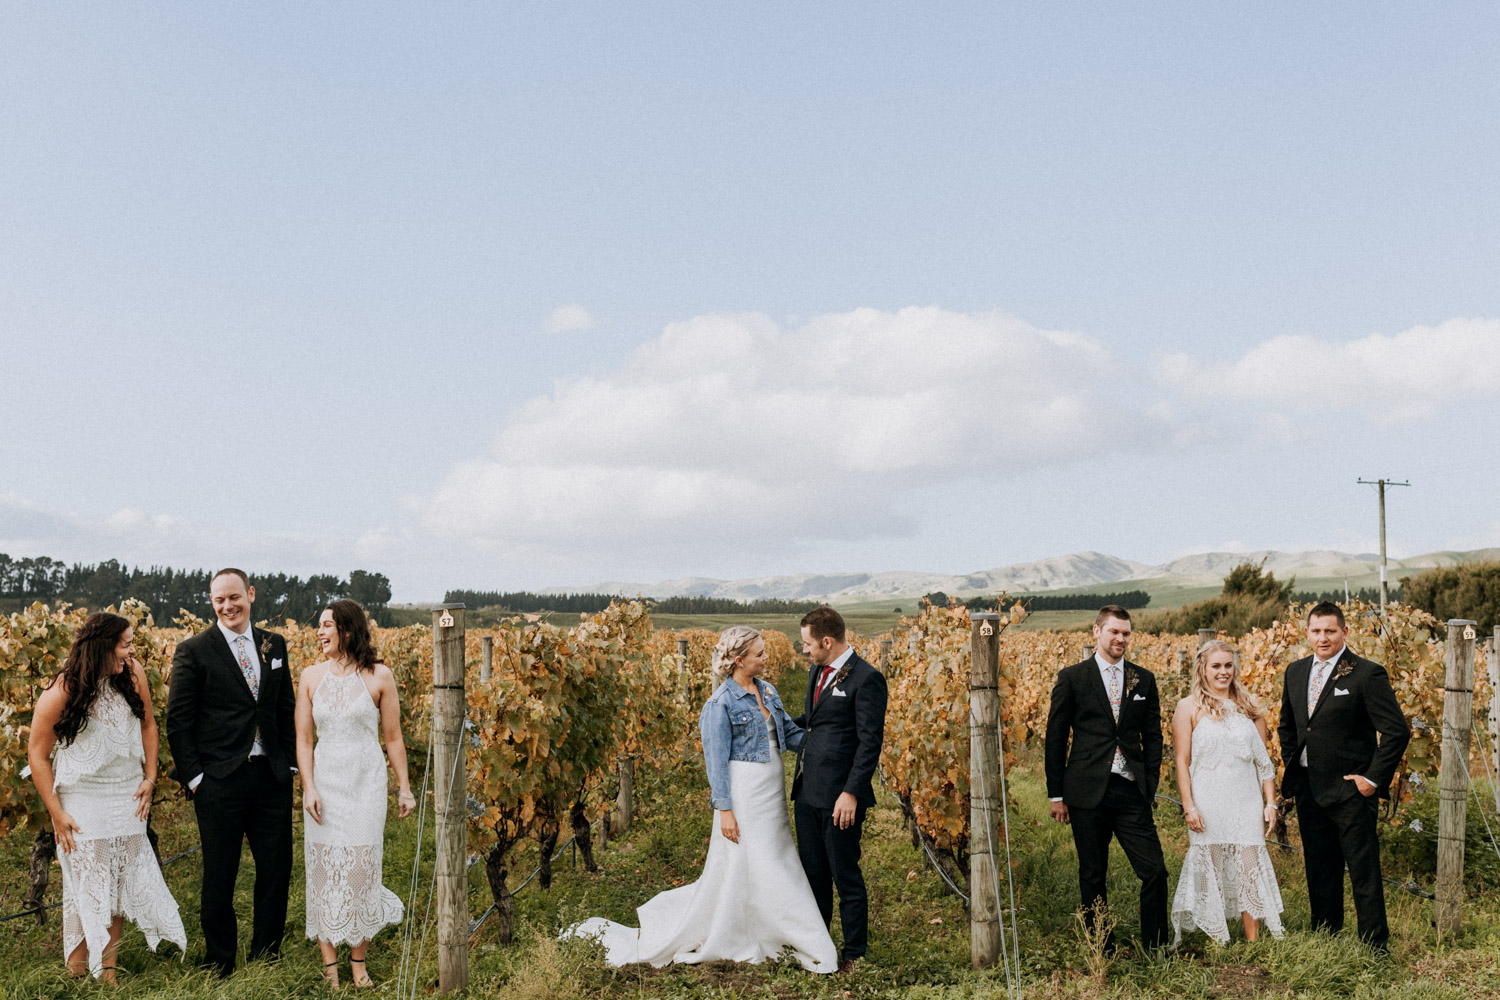 Vineyard bridal party photos